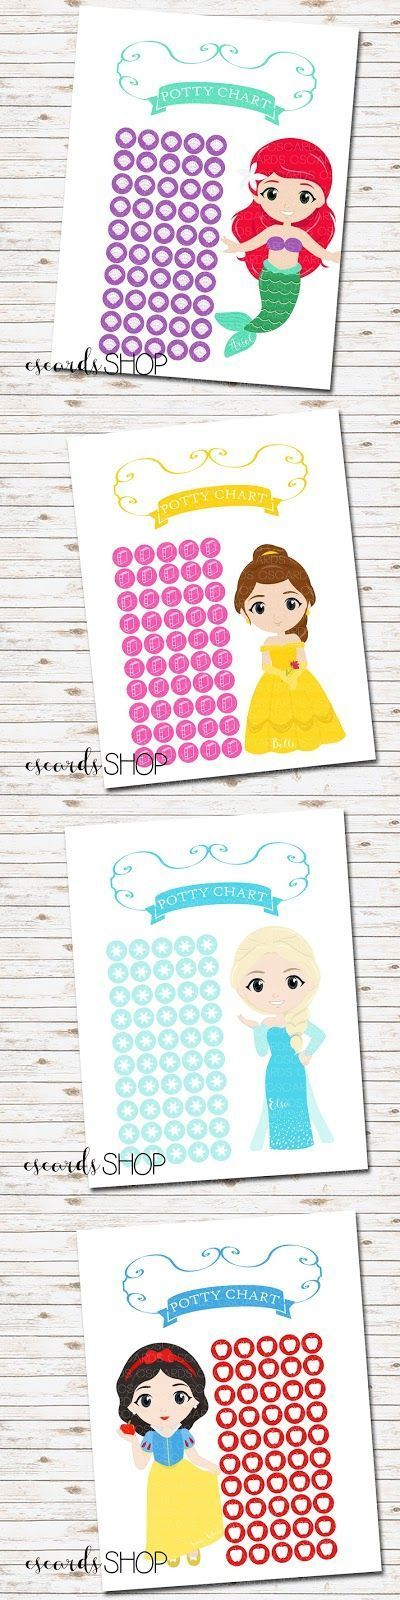 Disney Princess Potty Charts! Such a fun way for little girls to